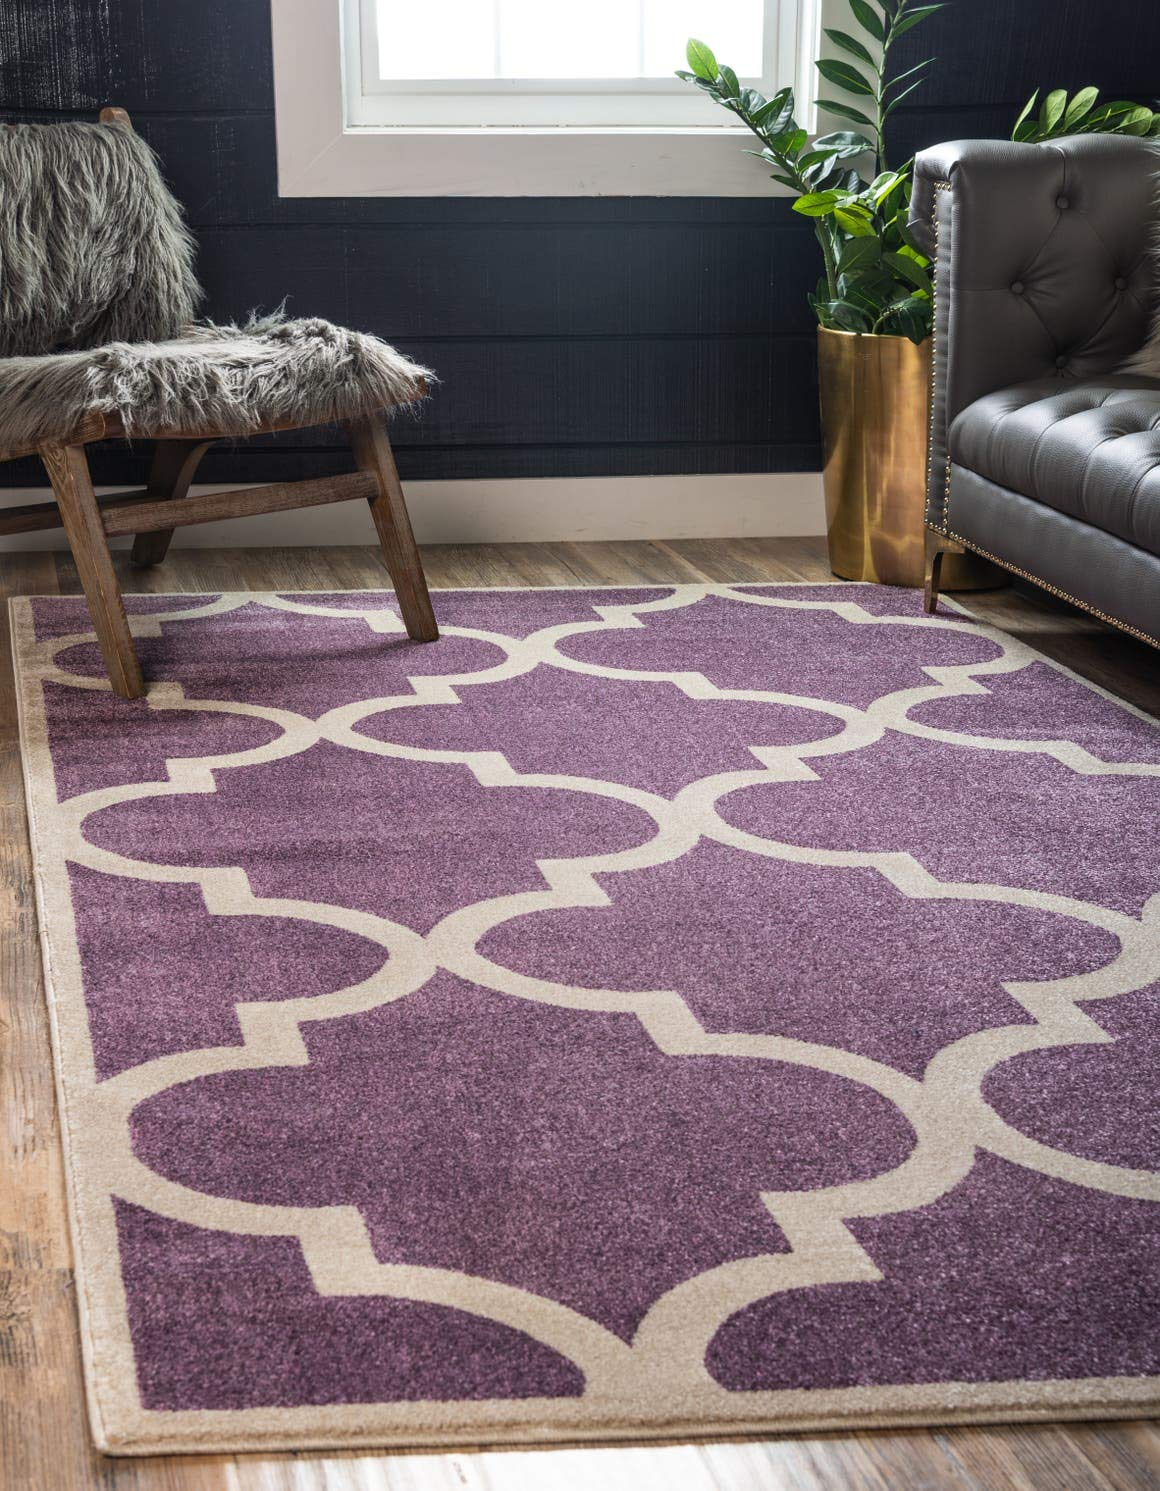 Unique Loom Trellis Collection Moroccan Lattice Purple Area Rug 4 0 x 6 0